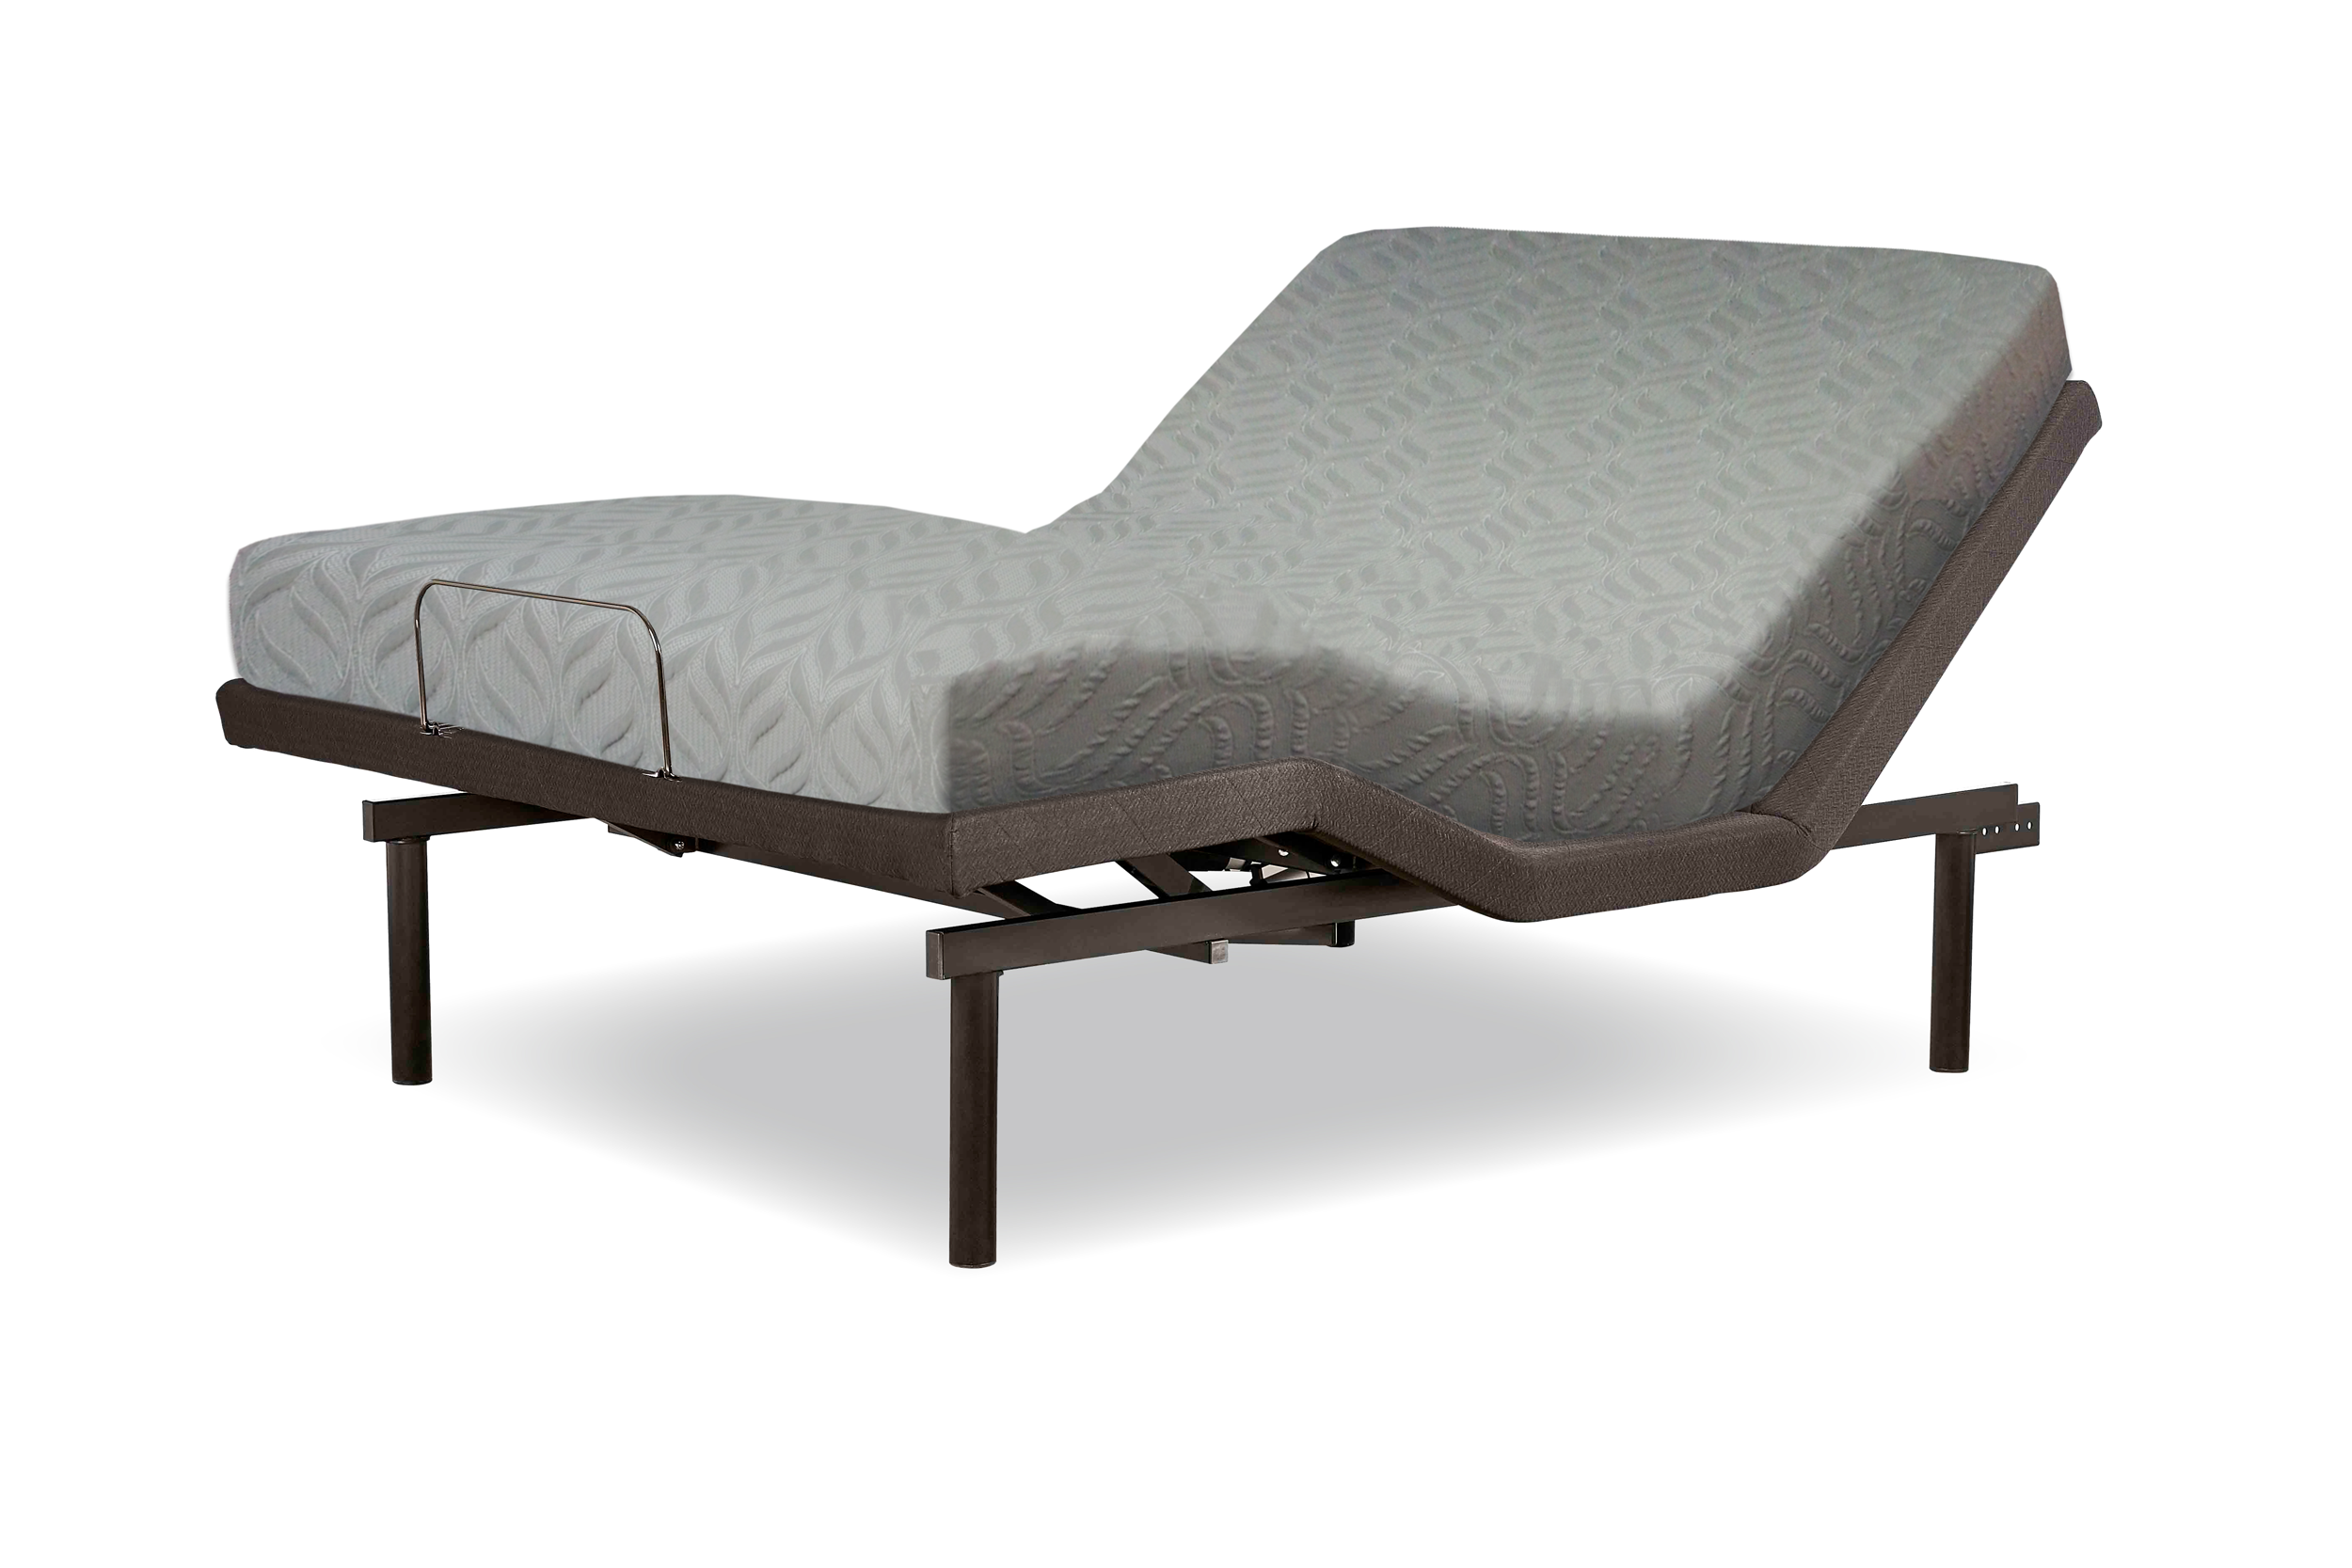 Customatic beds offer superior quality adjustable bed